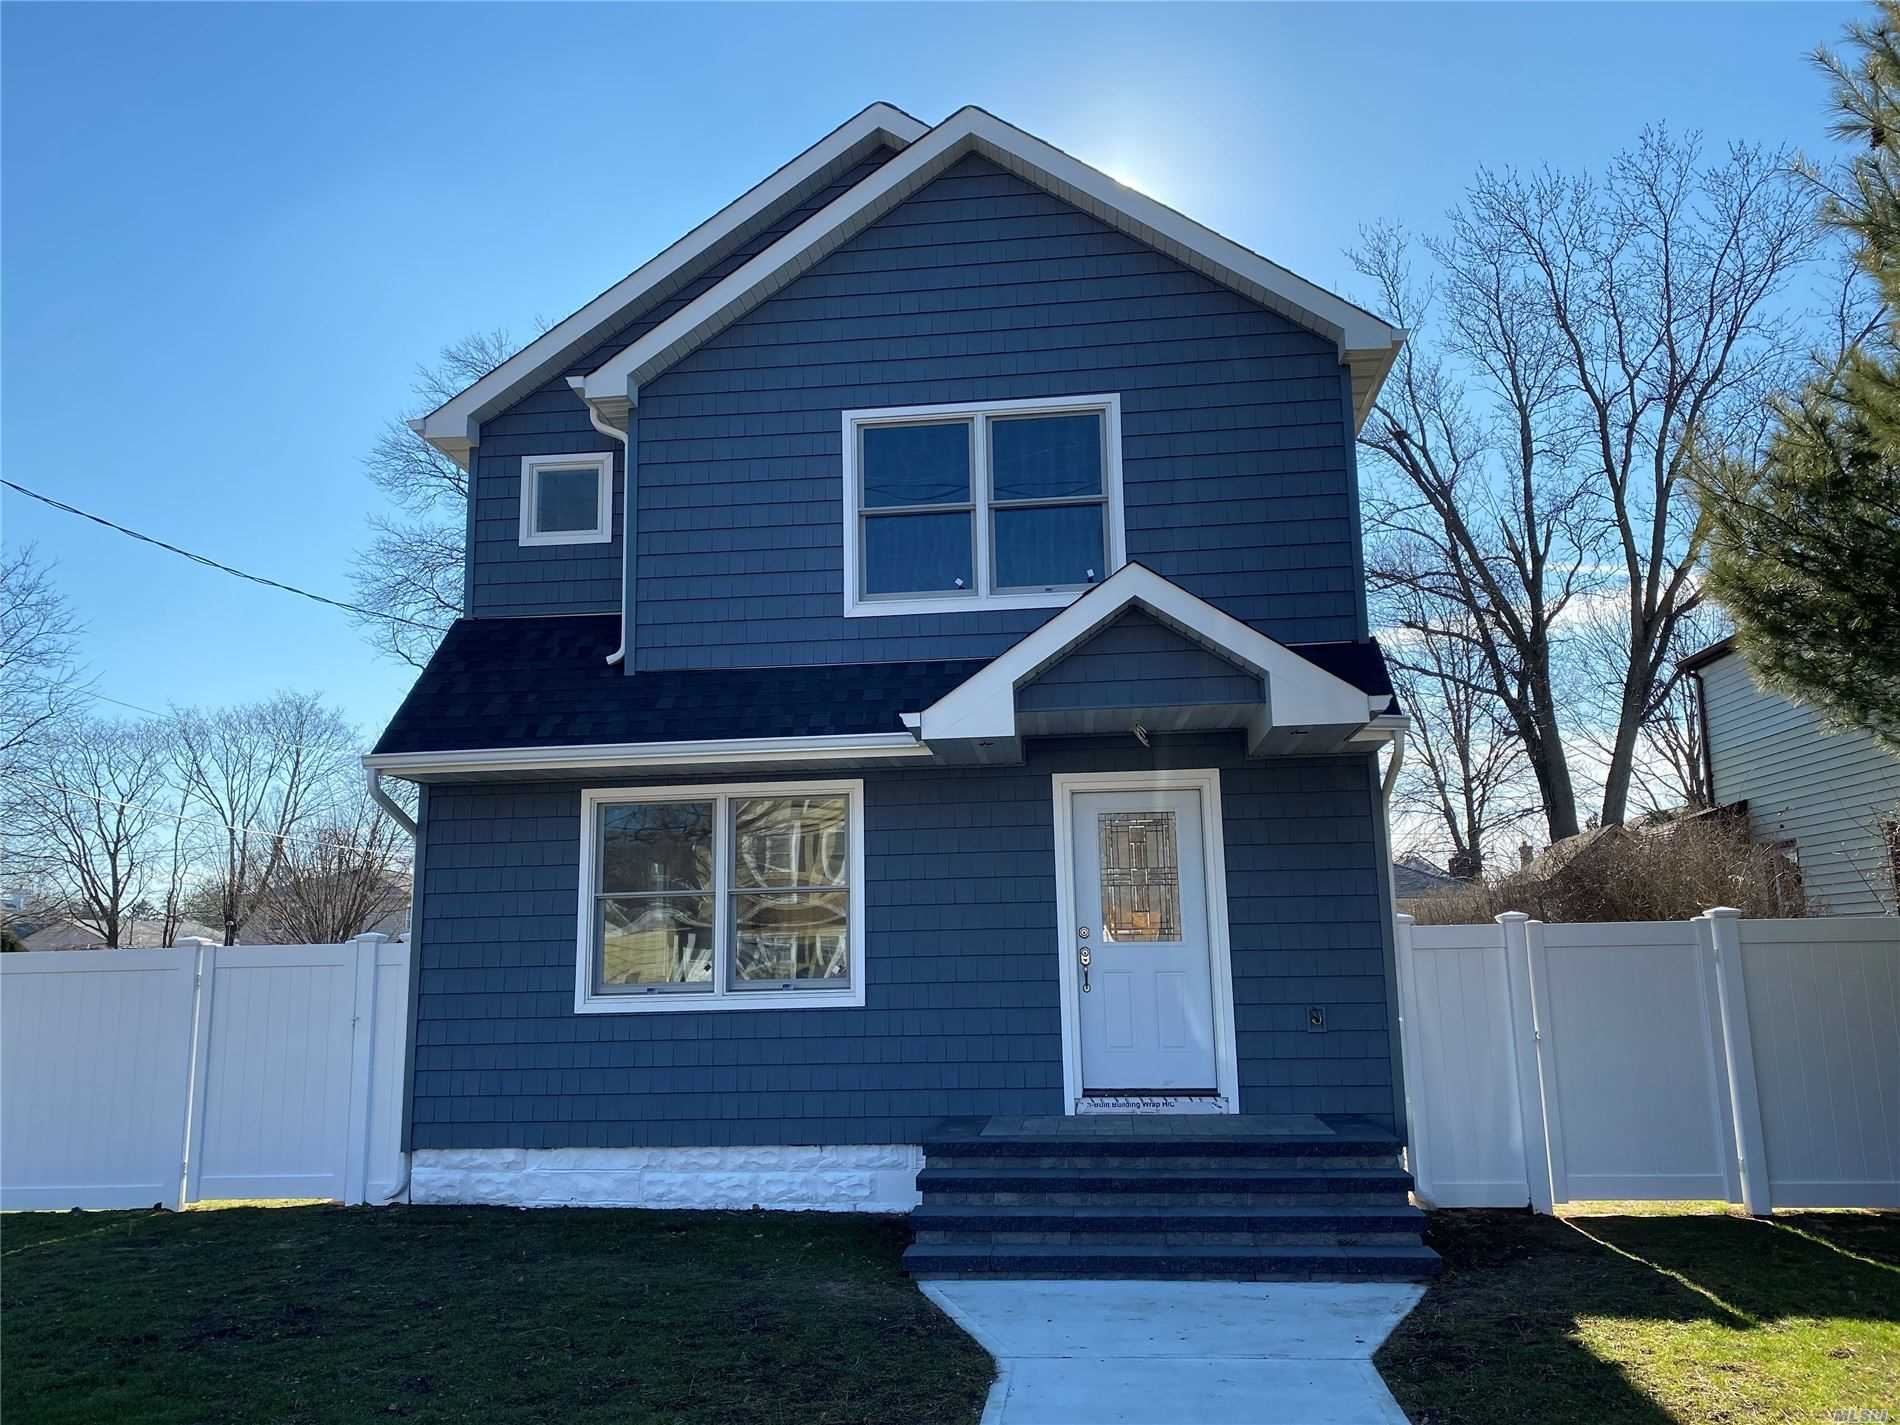 195 Smith Street, Merrick, NY 11566 - MLS#: 3194904